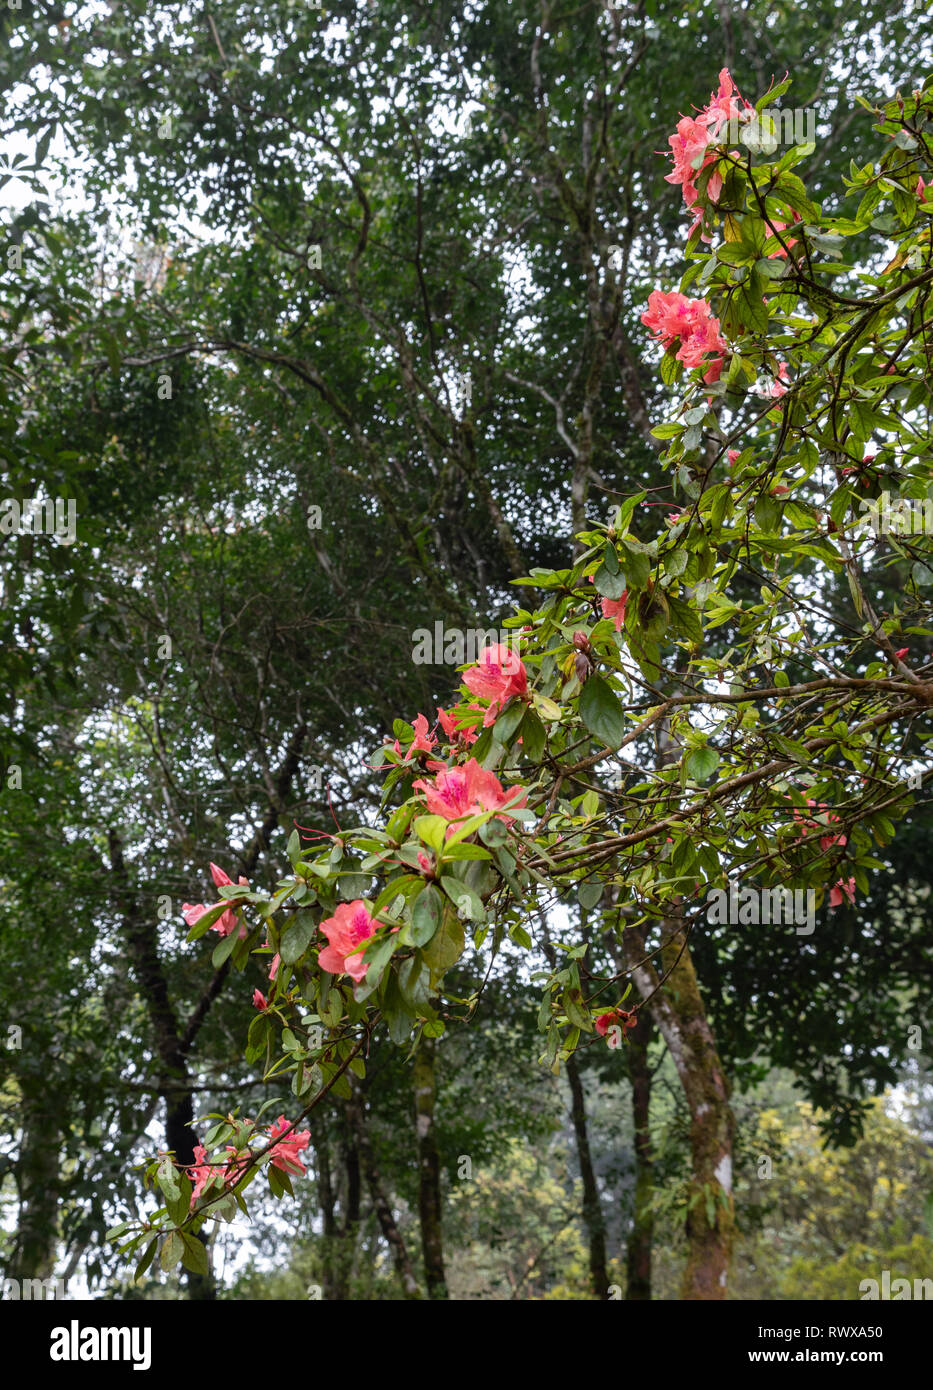 Rhododendron arboreum tree with the drop after the rain in the botanical garden. - Stock Image